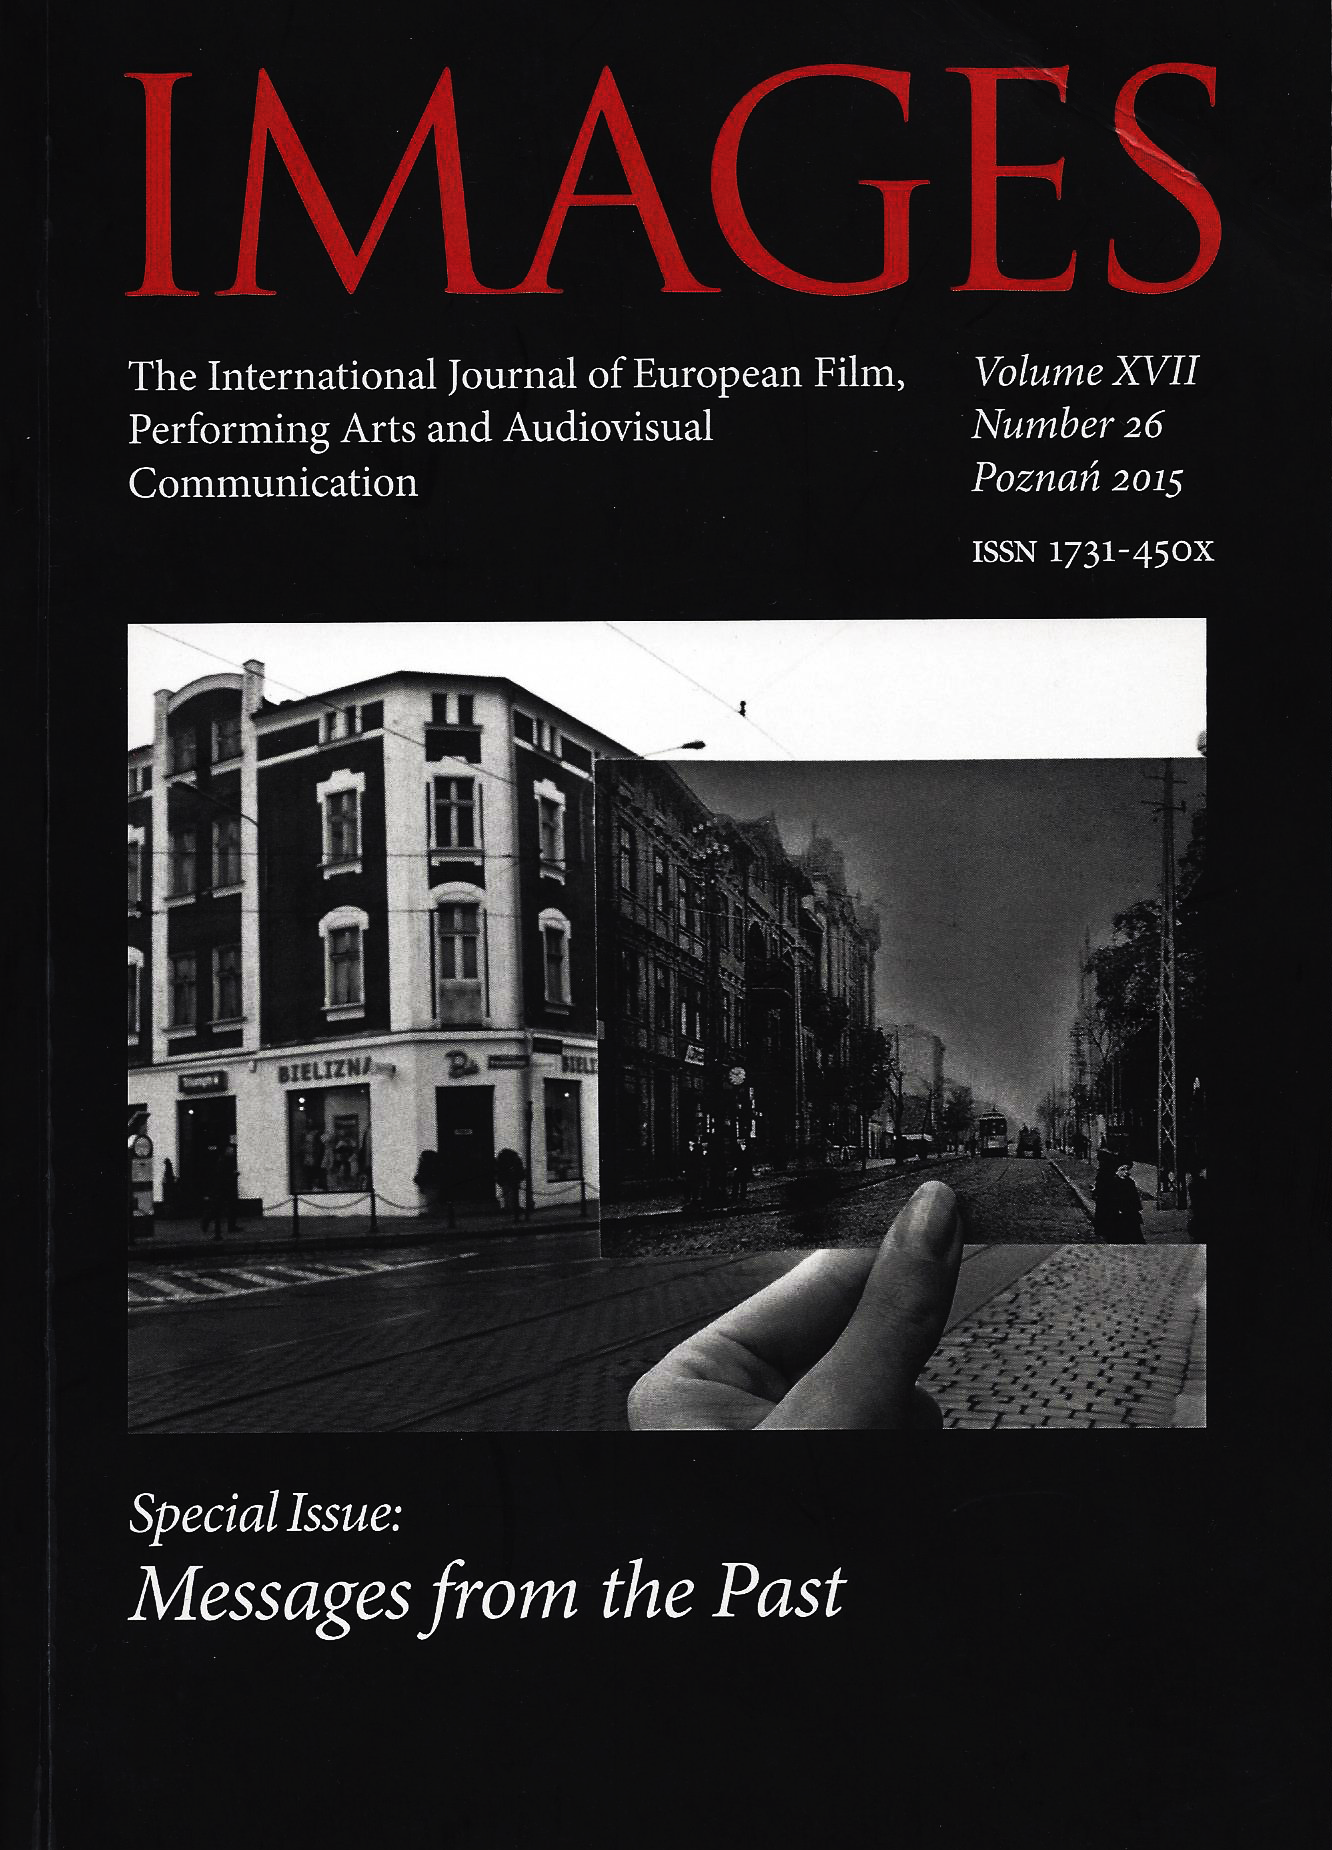 Images. The International Journal of European Film, Performing Arts and Audiovisual Communication